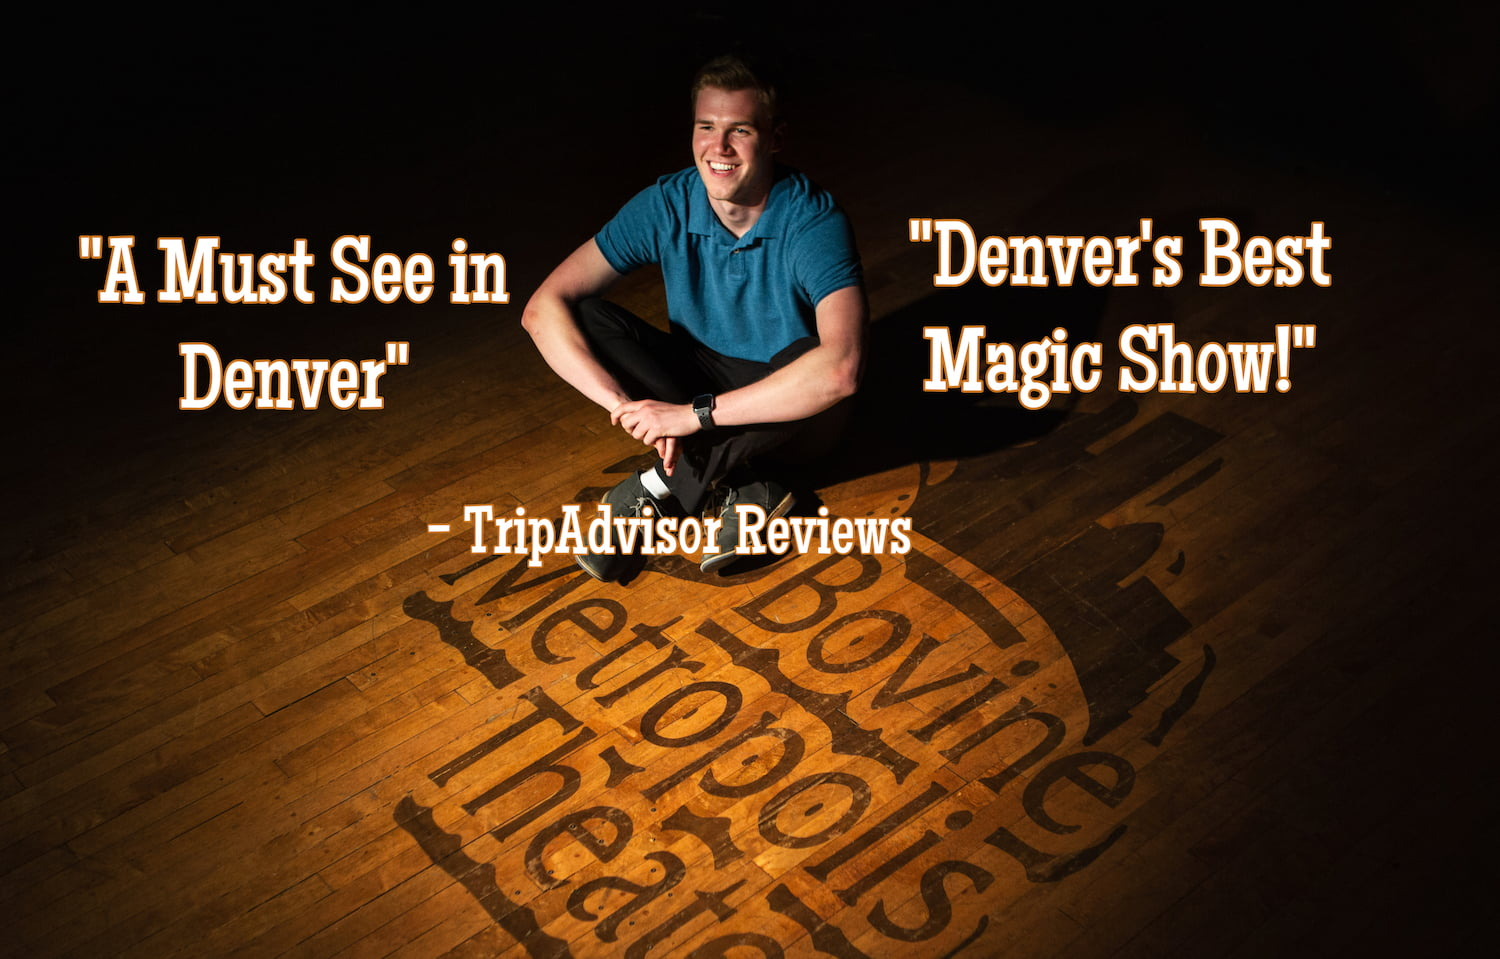 Scotty Wiese Presents 'Mile High Magic' – the Weekly Magic Show Every Sunday in Downtown Denver